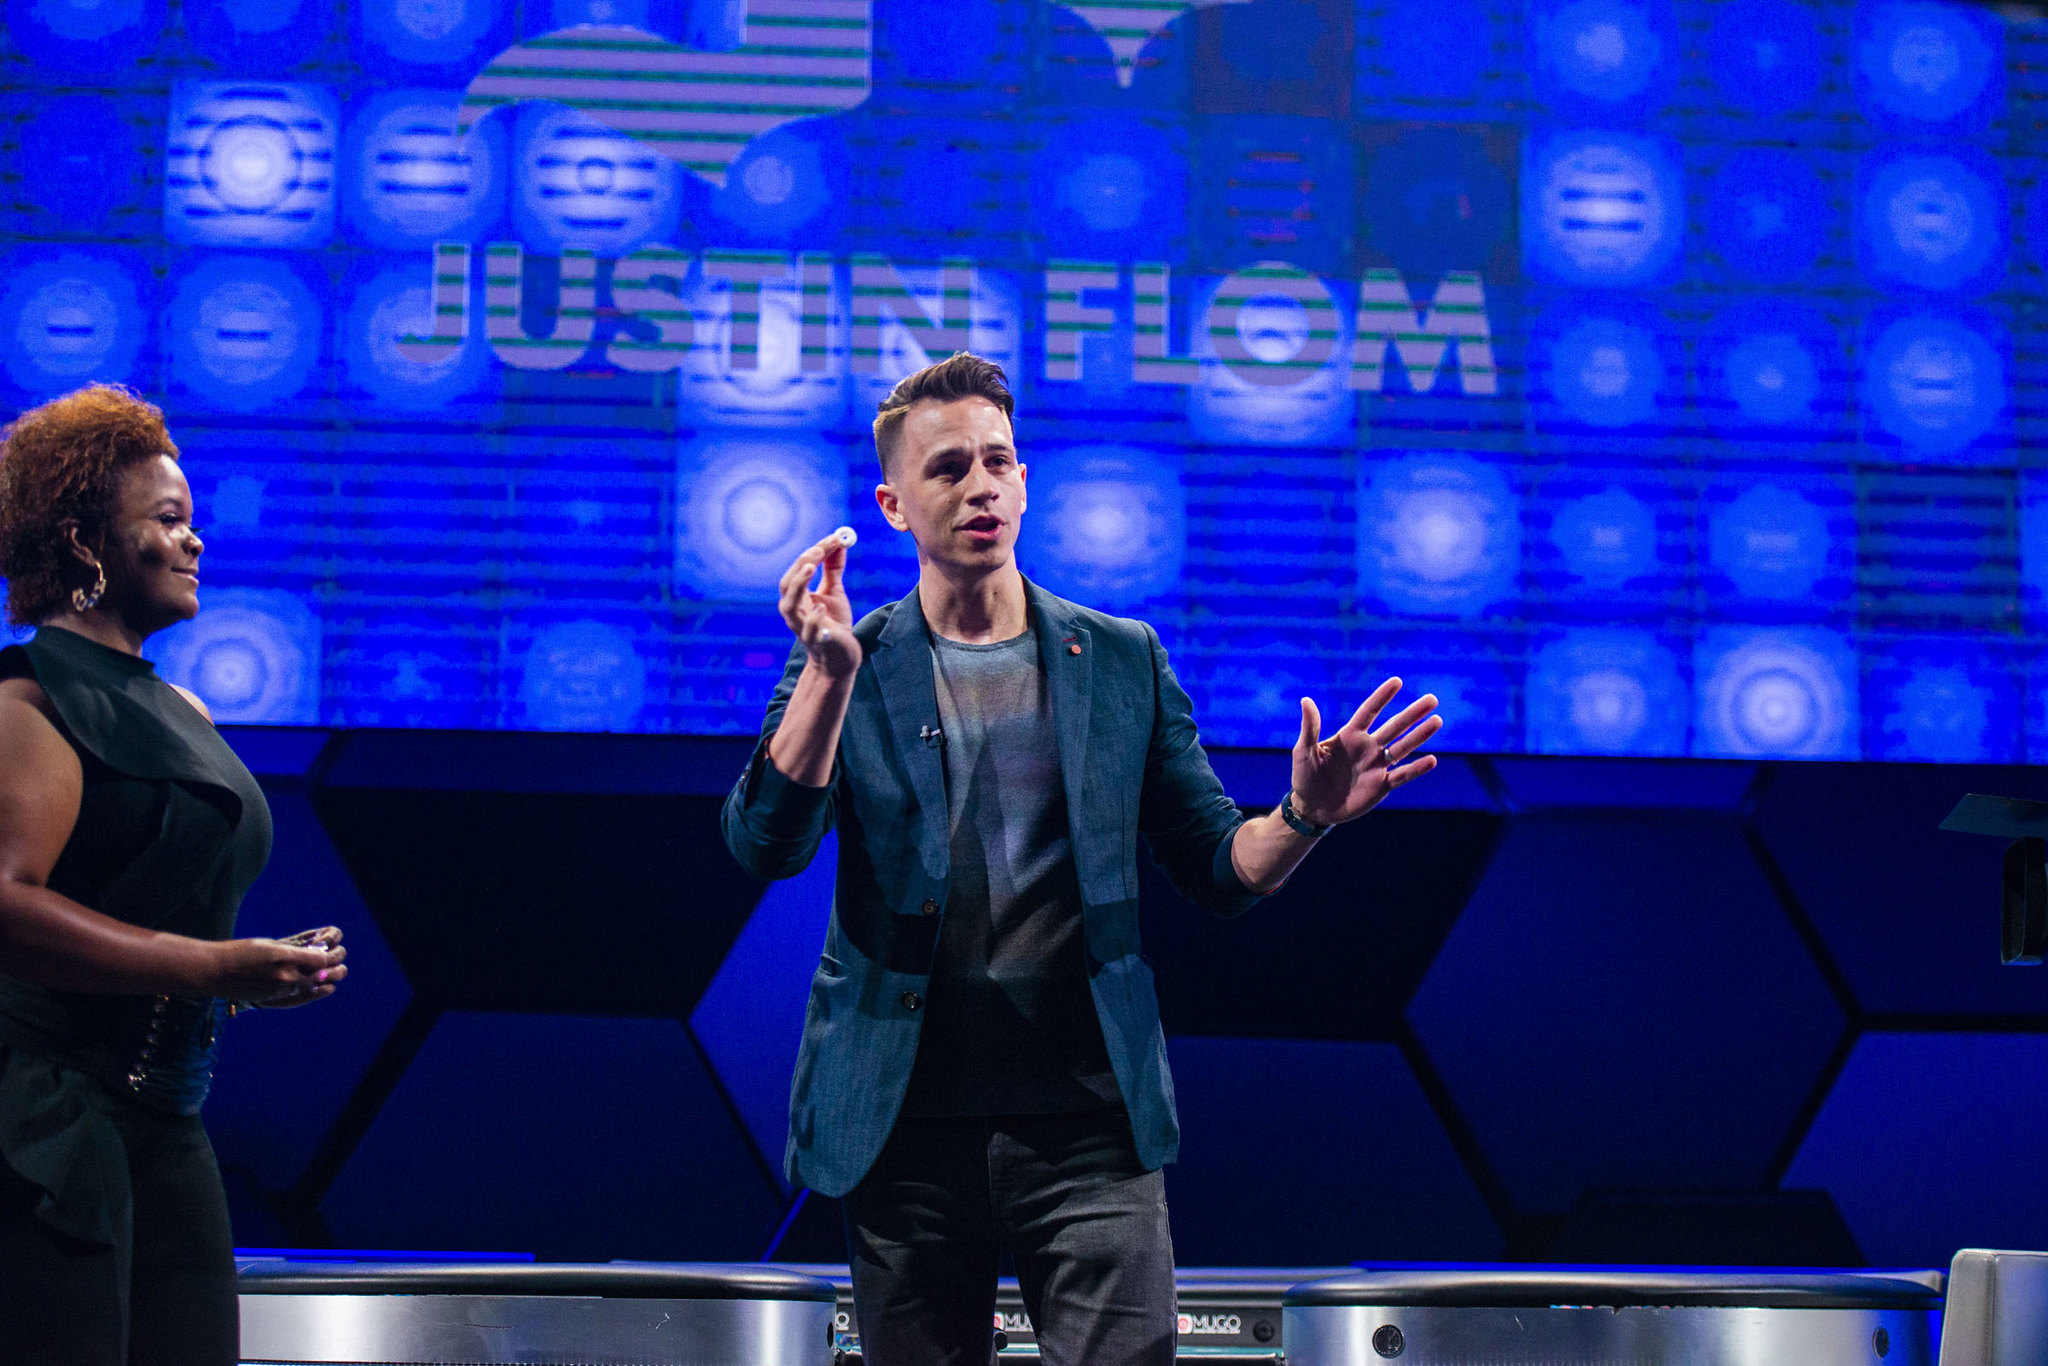 Justin Flom WPT Champions Cup Finals